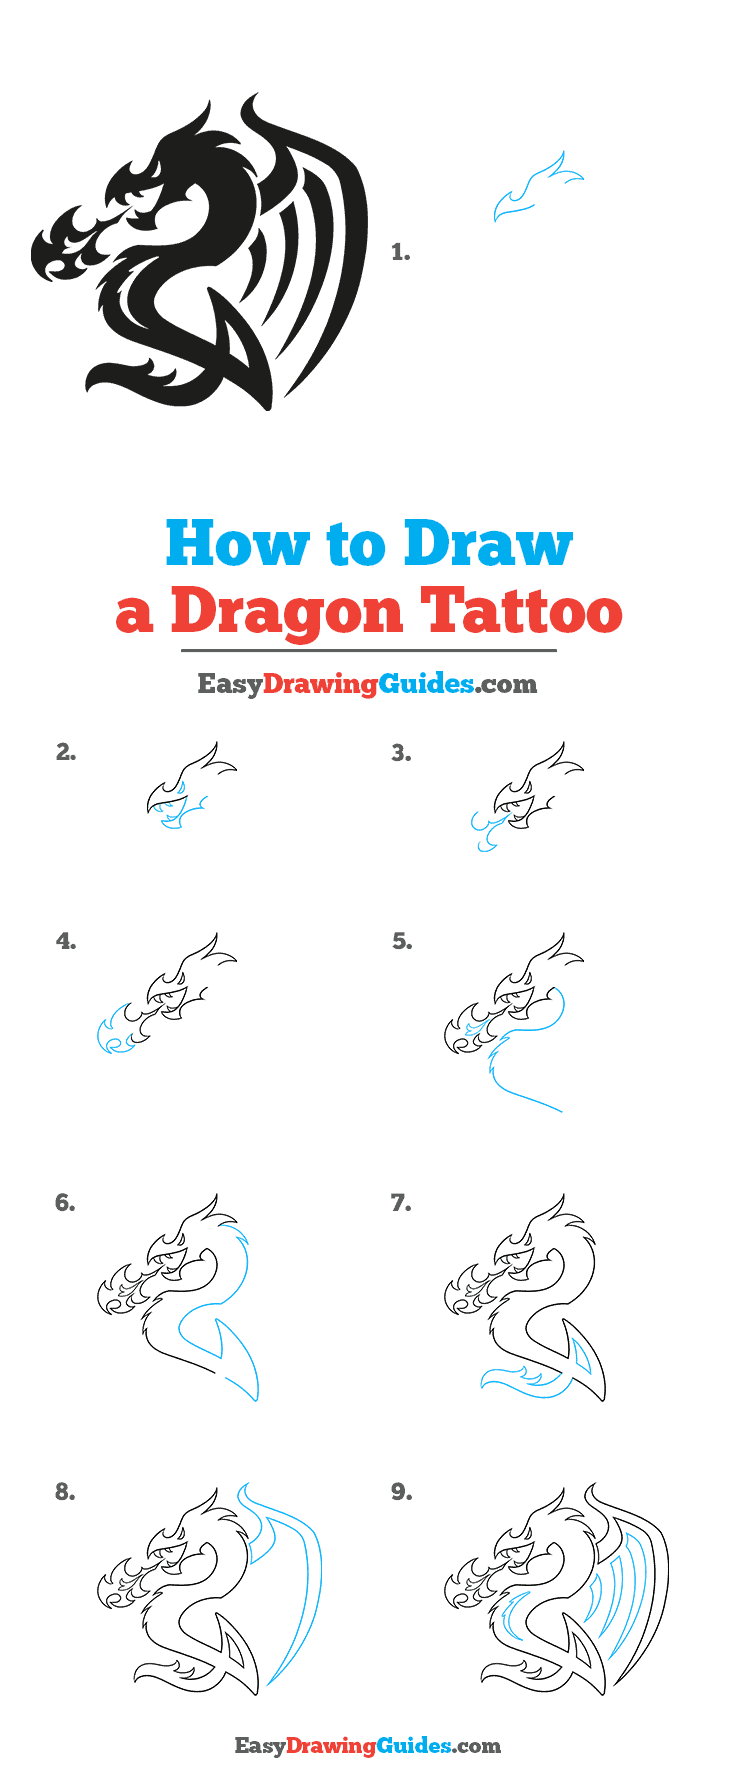 How to Draw a Dragon Tattoo Step by Step Tutorial Image